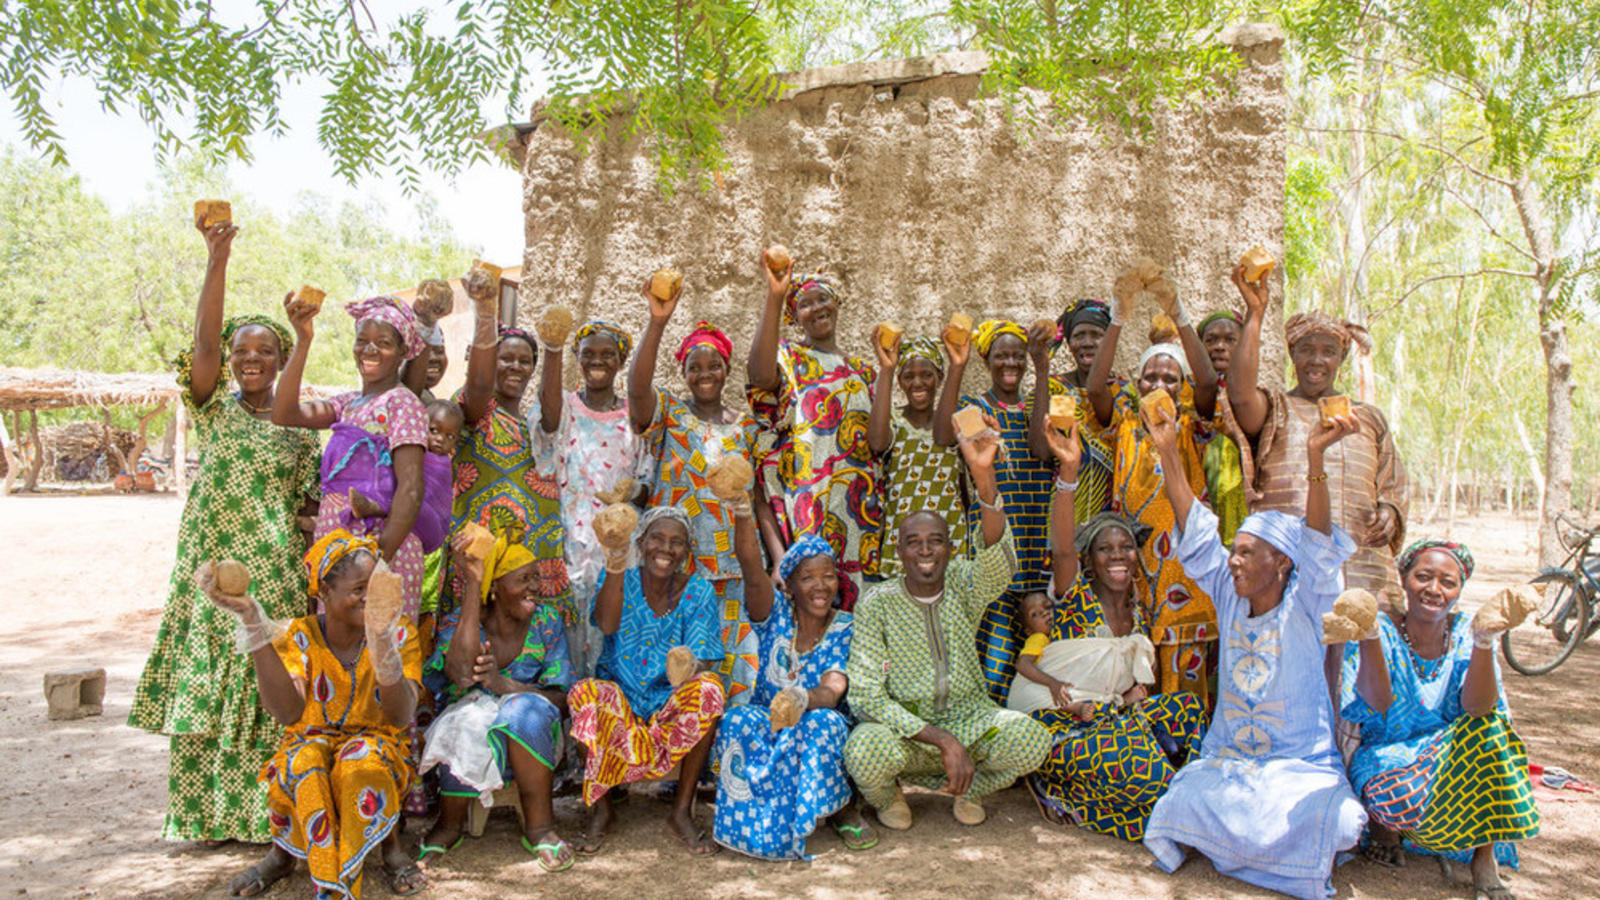 A village in Mali celebrates that they have access to clean water by posing for a picture.